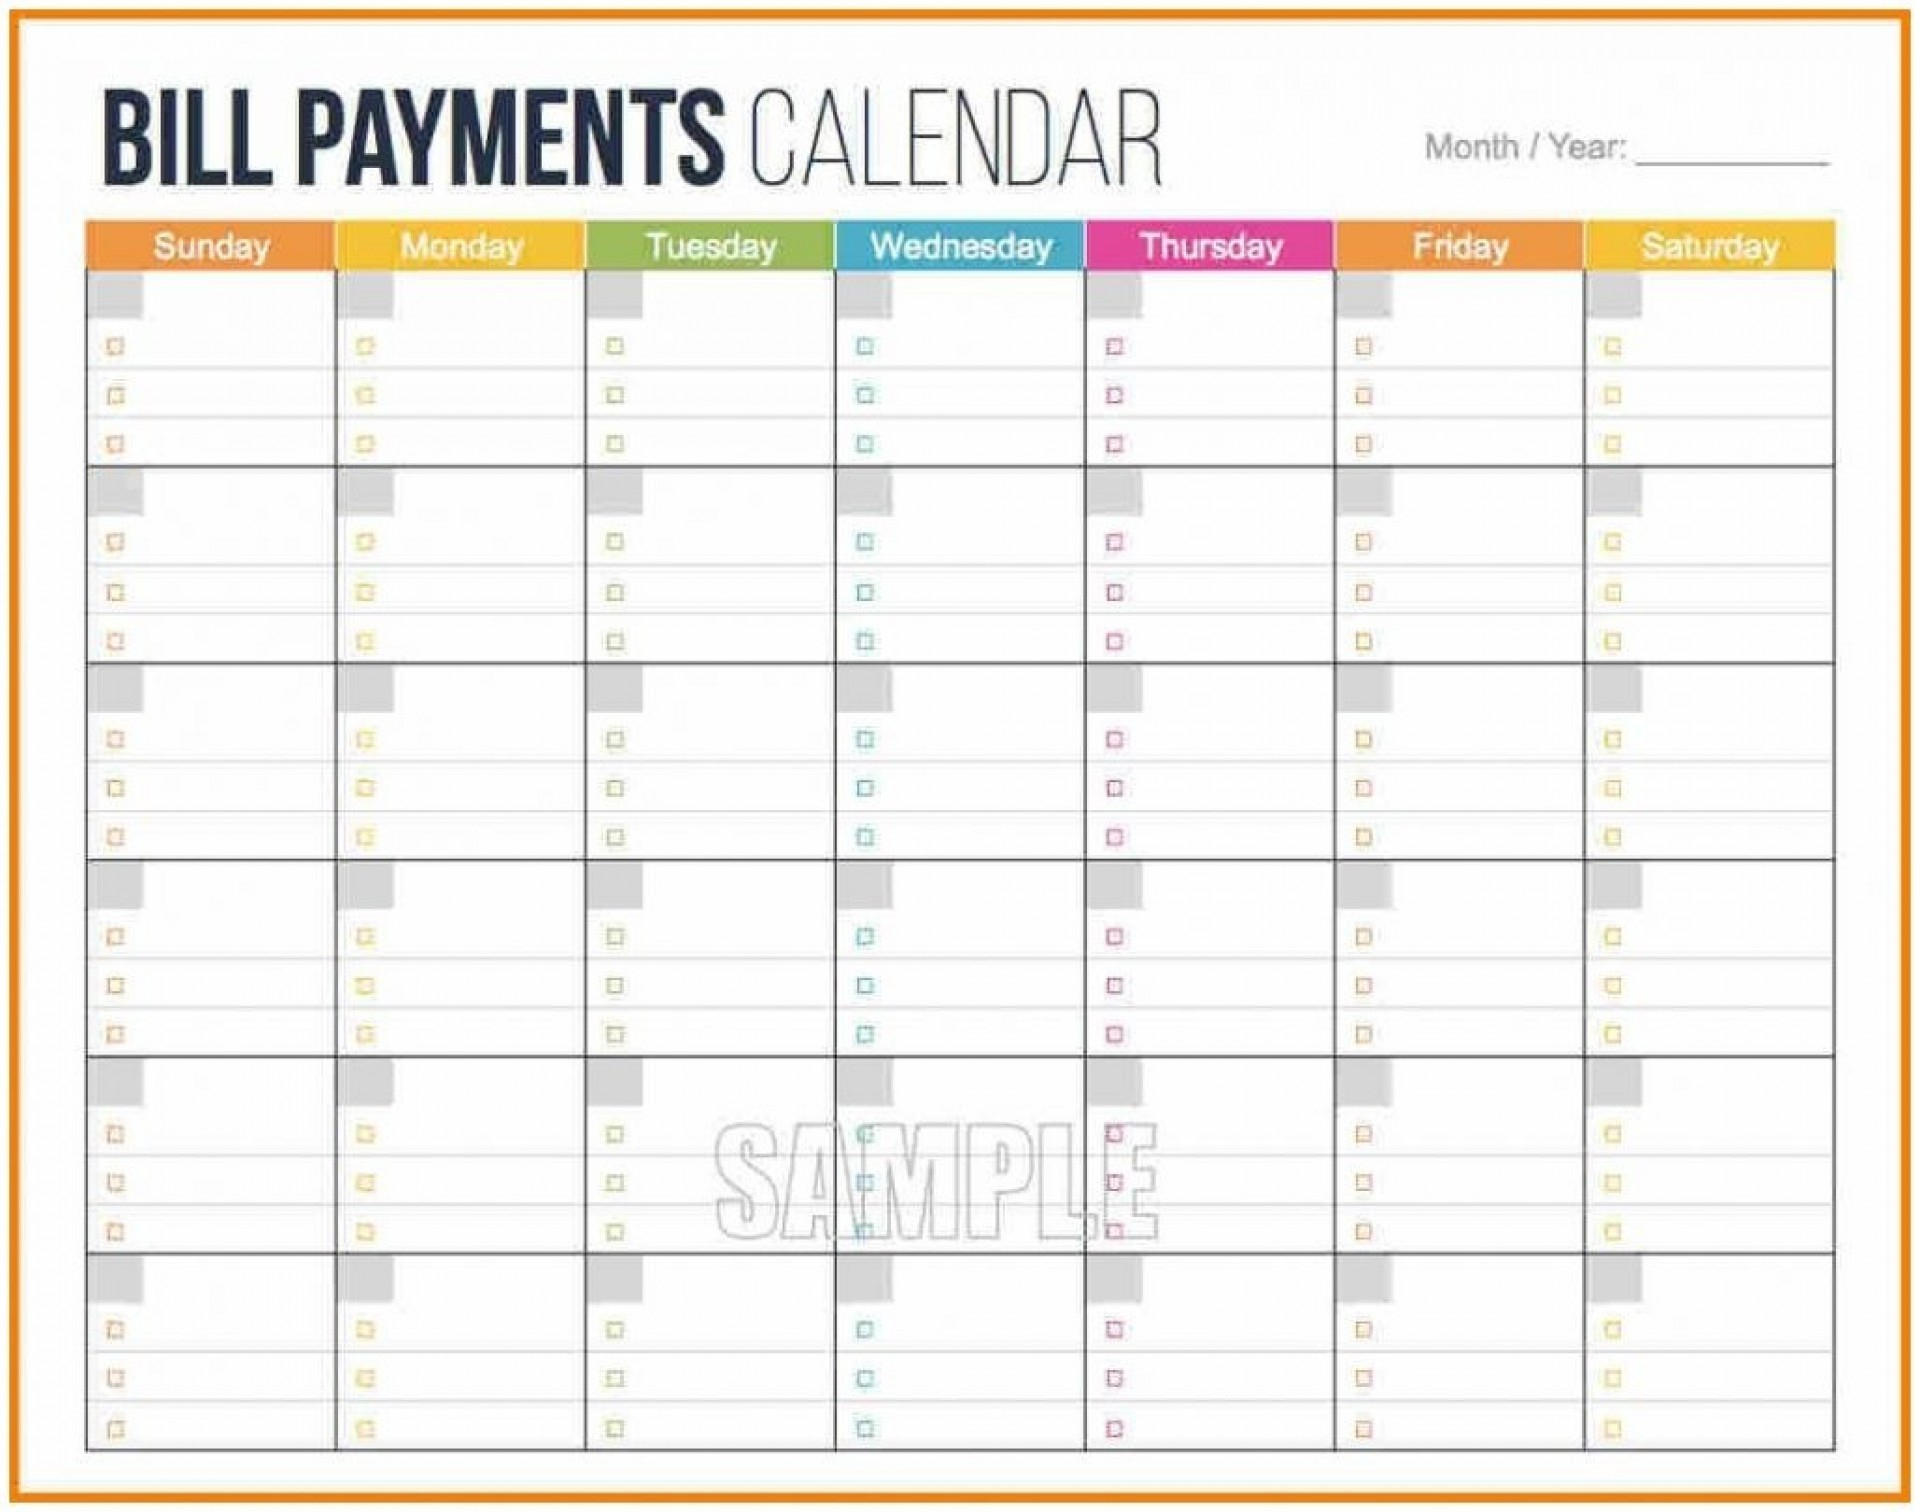 003 Bill Pay Calendar Template Ideas Paying Free Printable intended for Bill Pay Calendar Printable